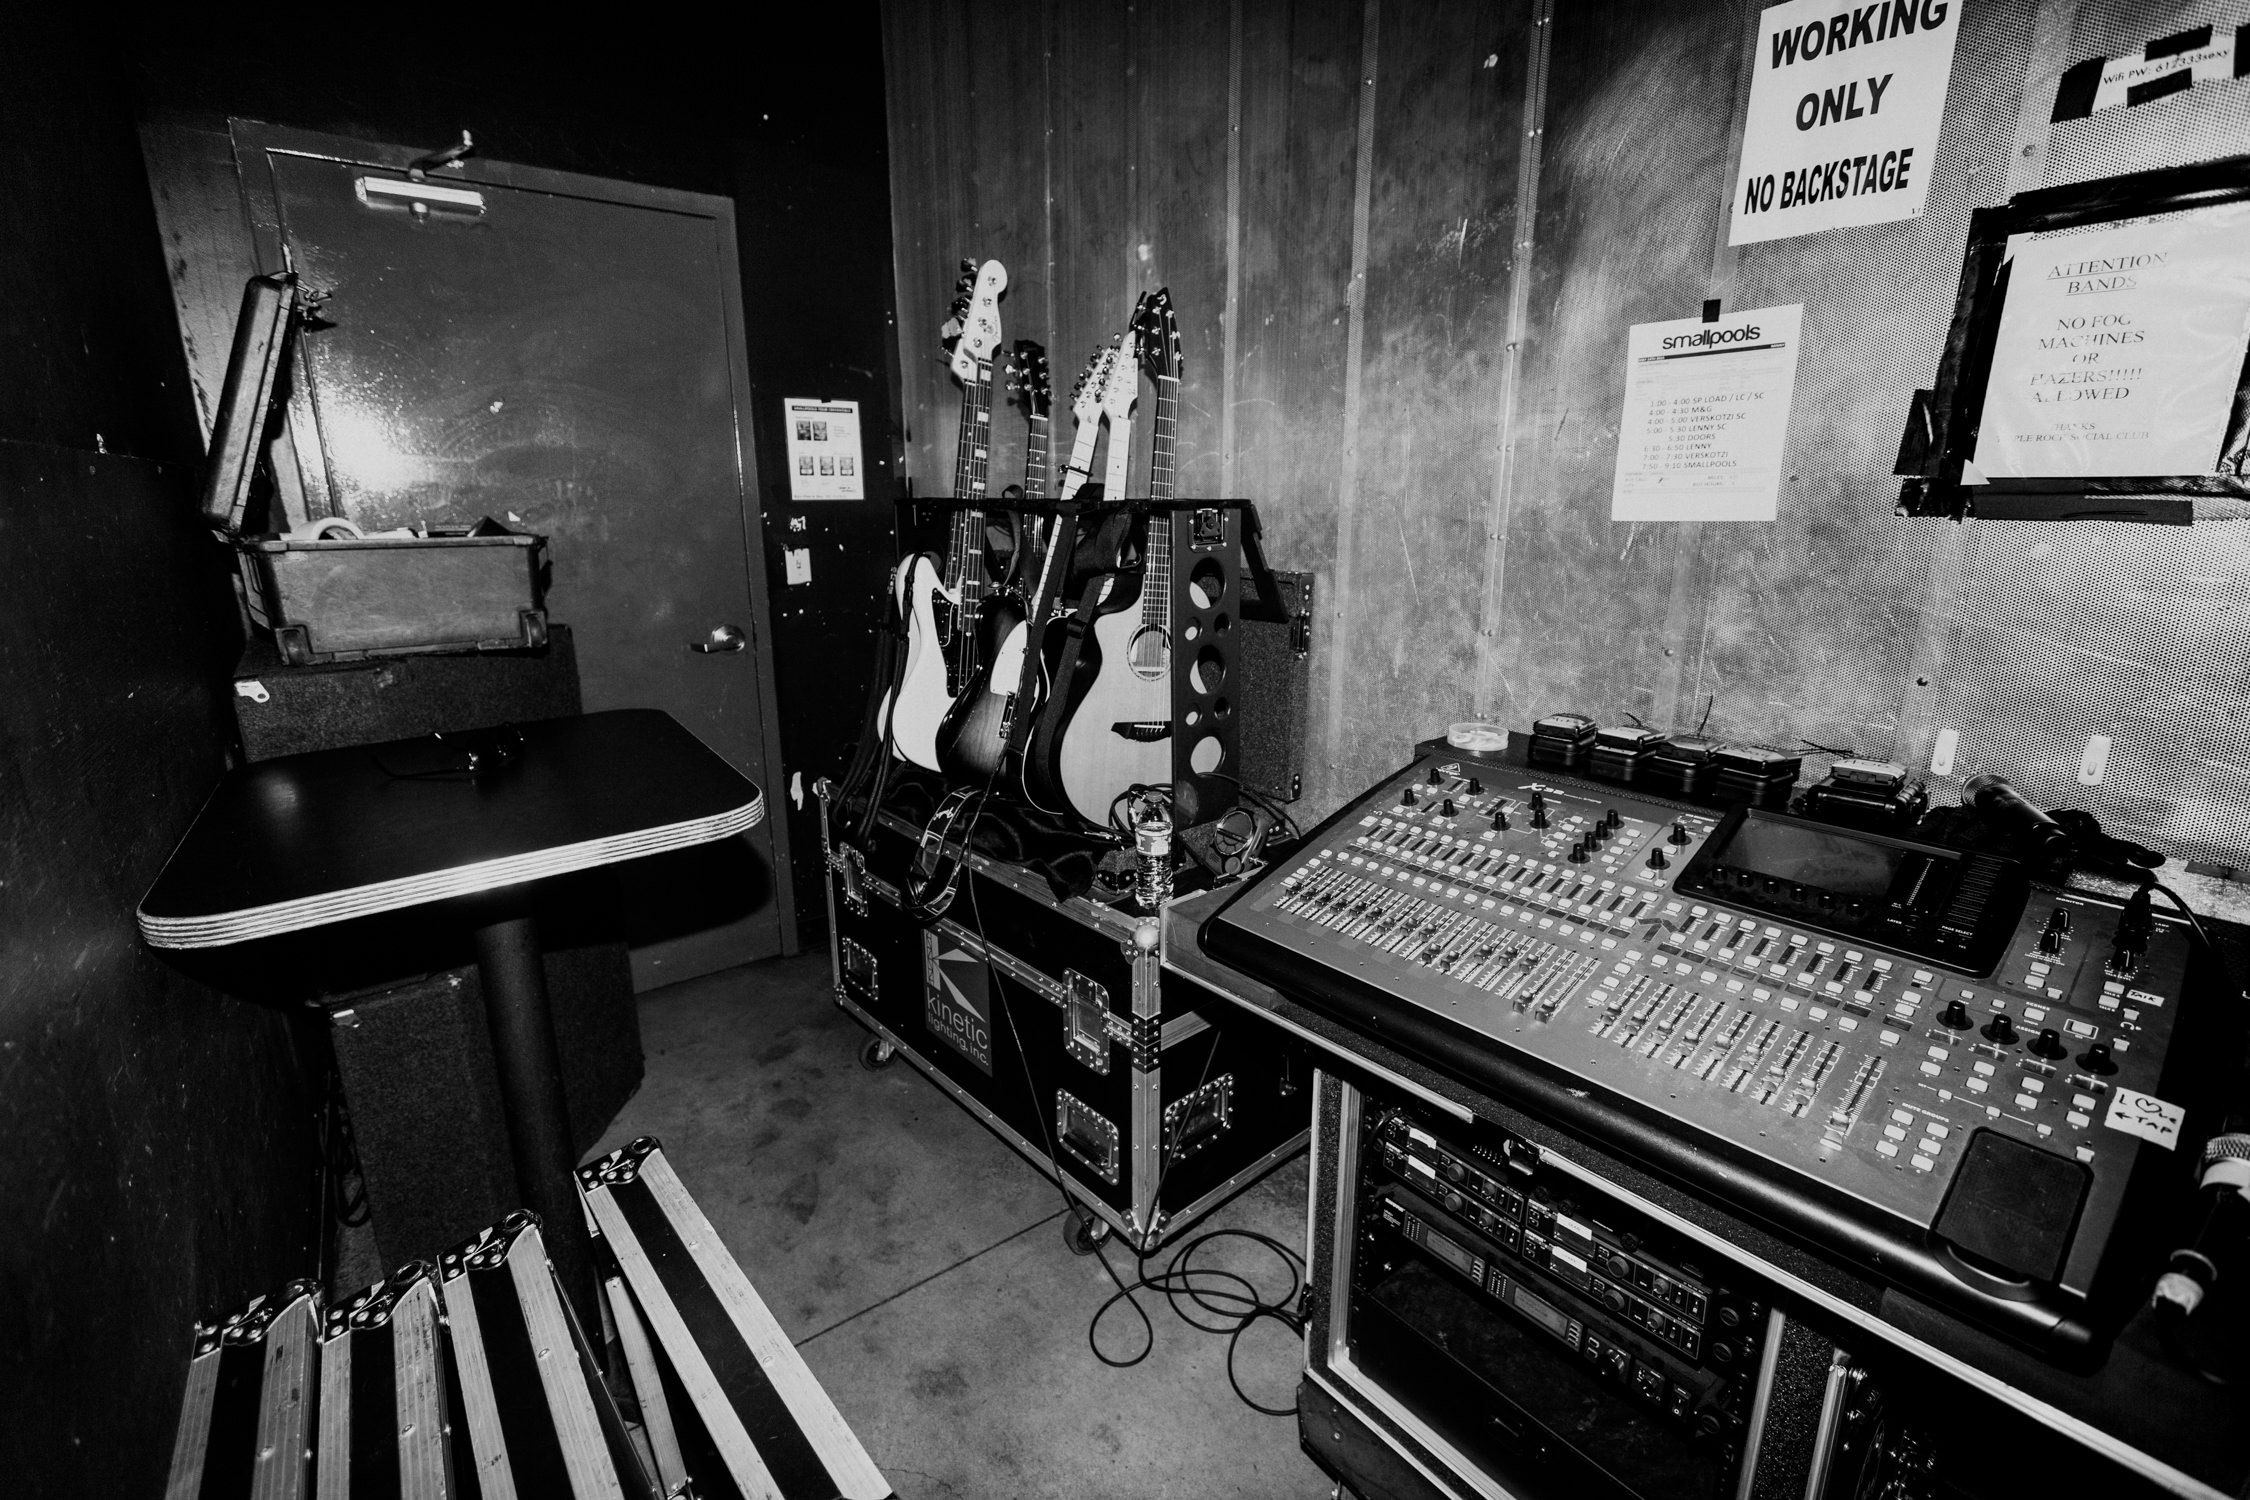 concert-backstage-guitar-boat-monitor-console-grungy-AnnaLeeMedia